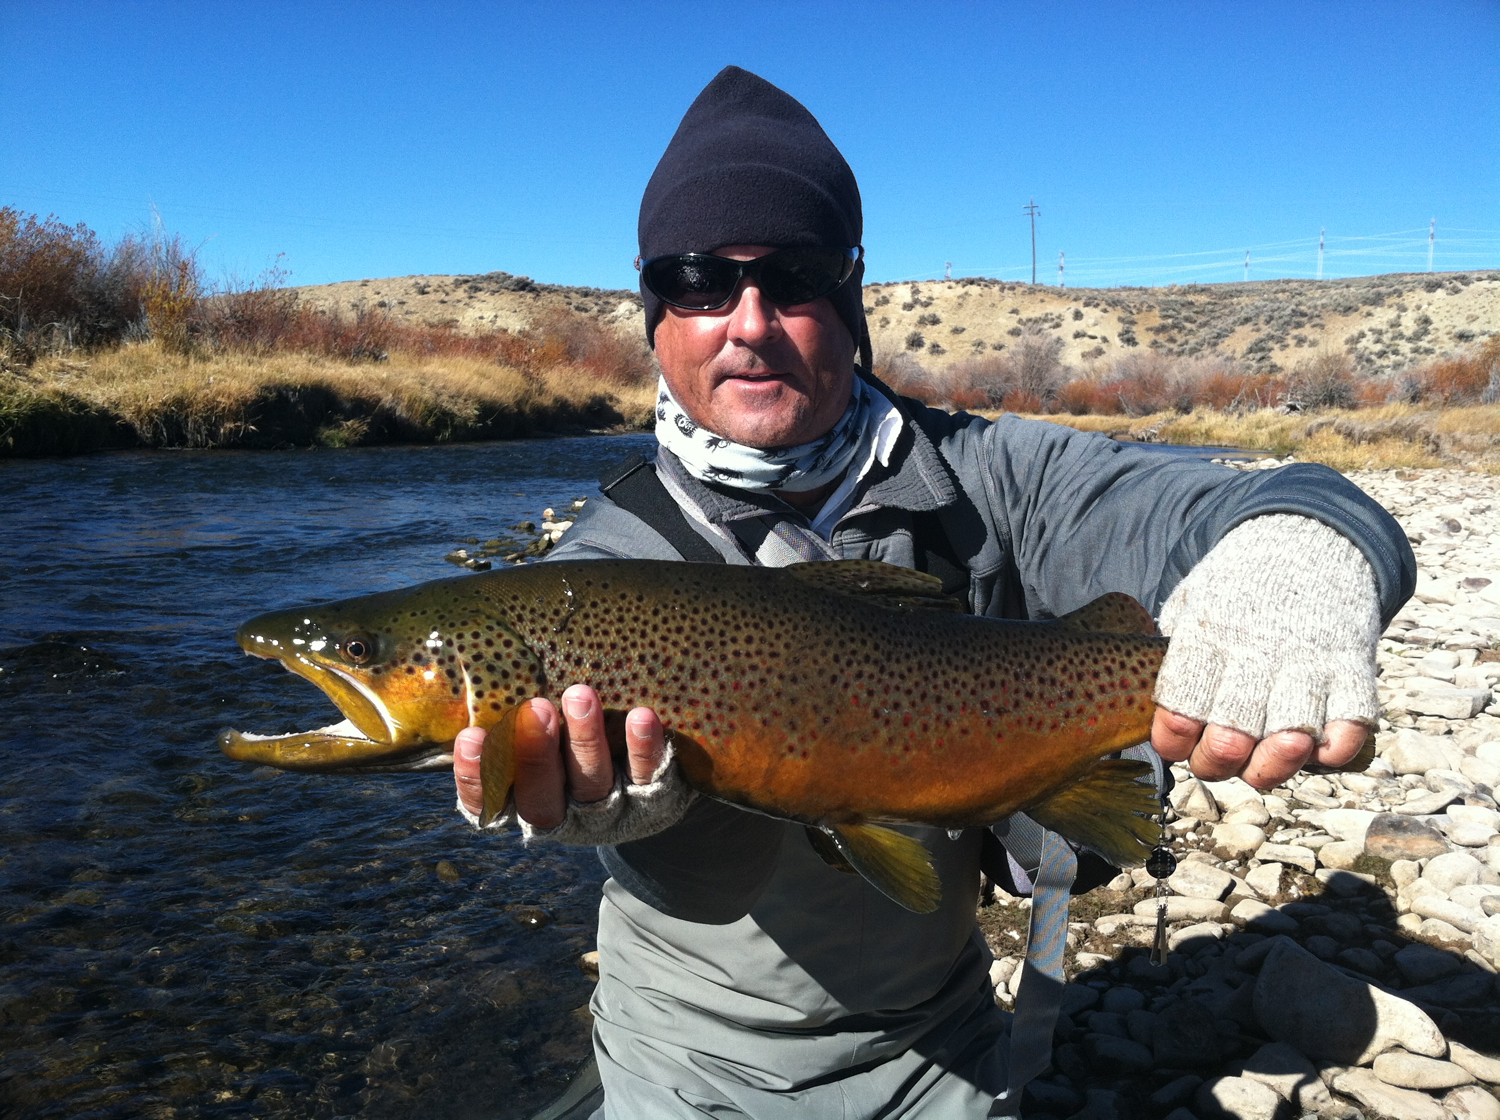 Mike with a brown trout, River x in the fall